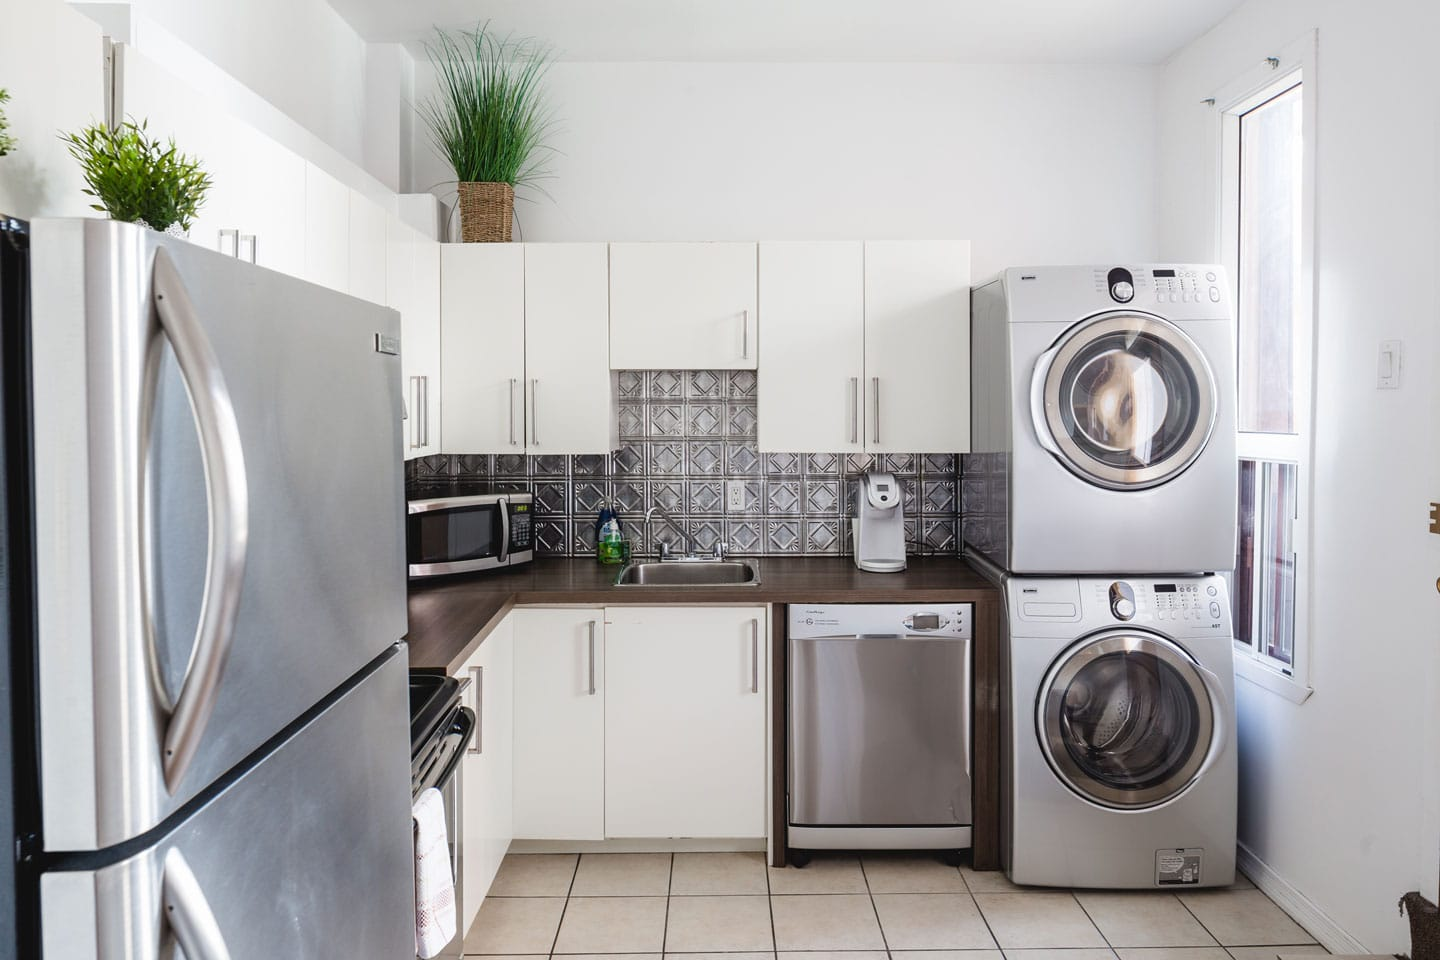 Vinyl: fully equipped kitchen with dishwasher